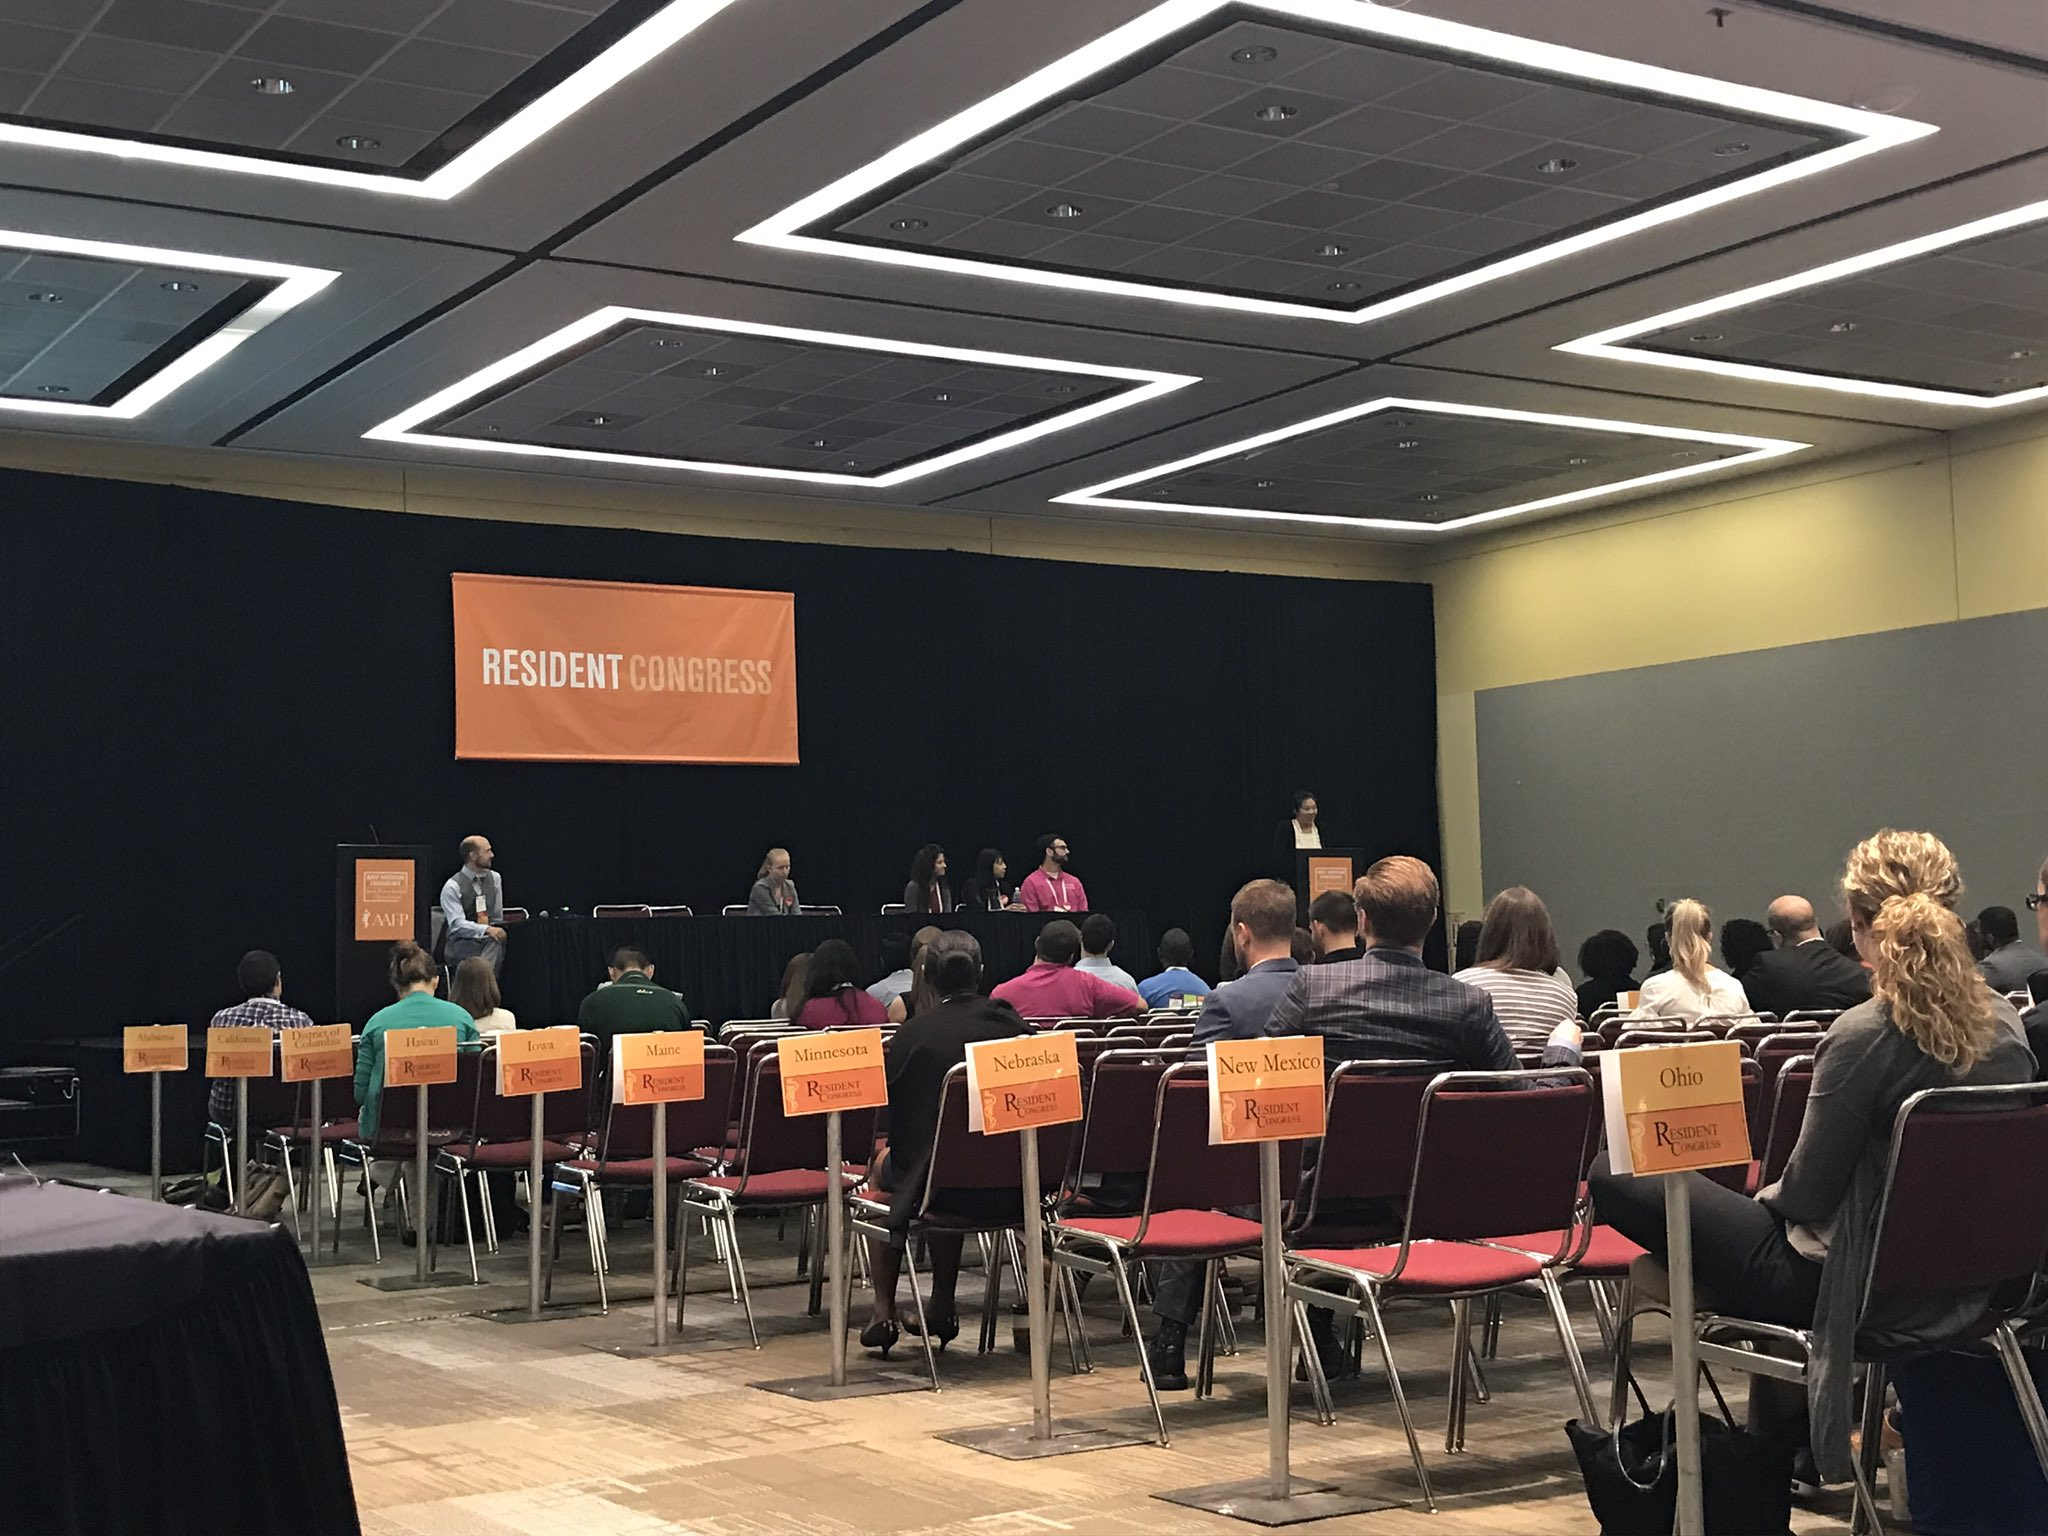 Tremendously touched by the thoughtful speeches of resident candidates #AAFPNC #socialjustice #humanrights #commitment & #FamilyMedicine https://t.co/KMrnfXfN6A